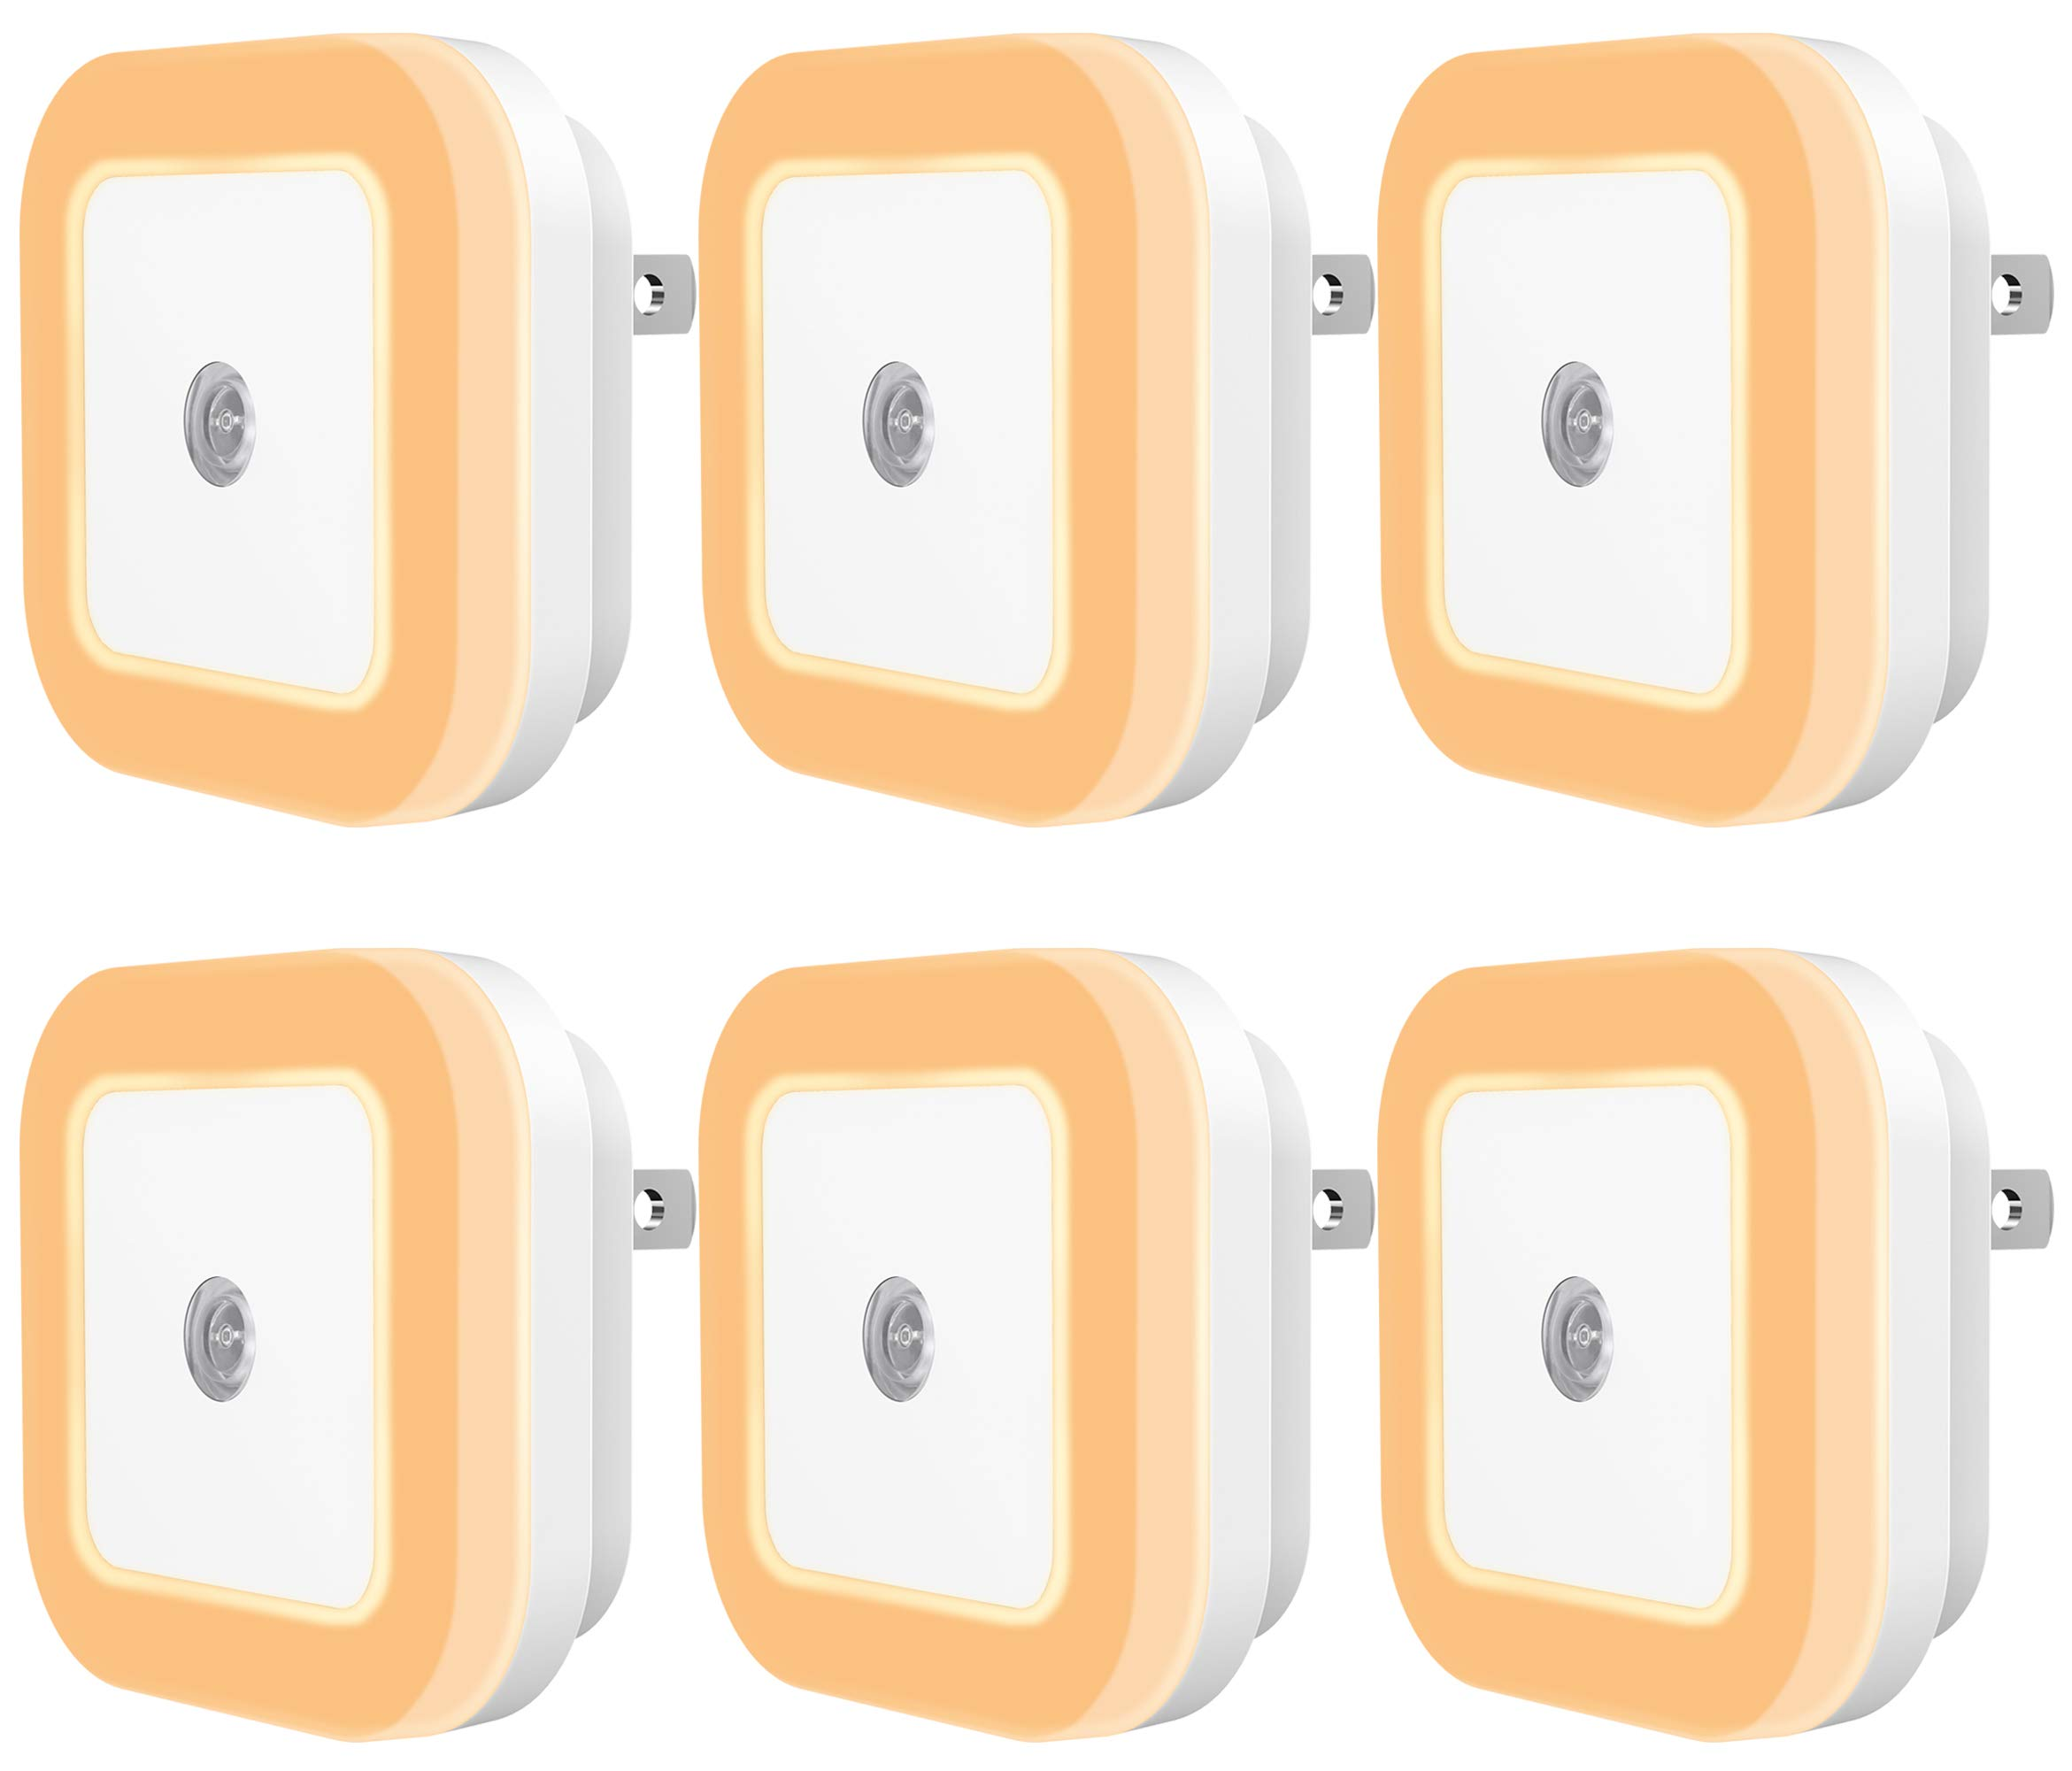 Sycees Plug-in LED Night Light Lamp with Dusk-to-Dawn Sensor for Bedroom, Bathroom, Kitchen, Hallway, Stairs, Warm White, 6-Pack by SYCEES